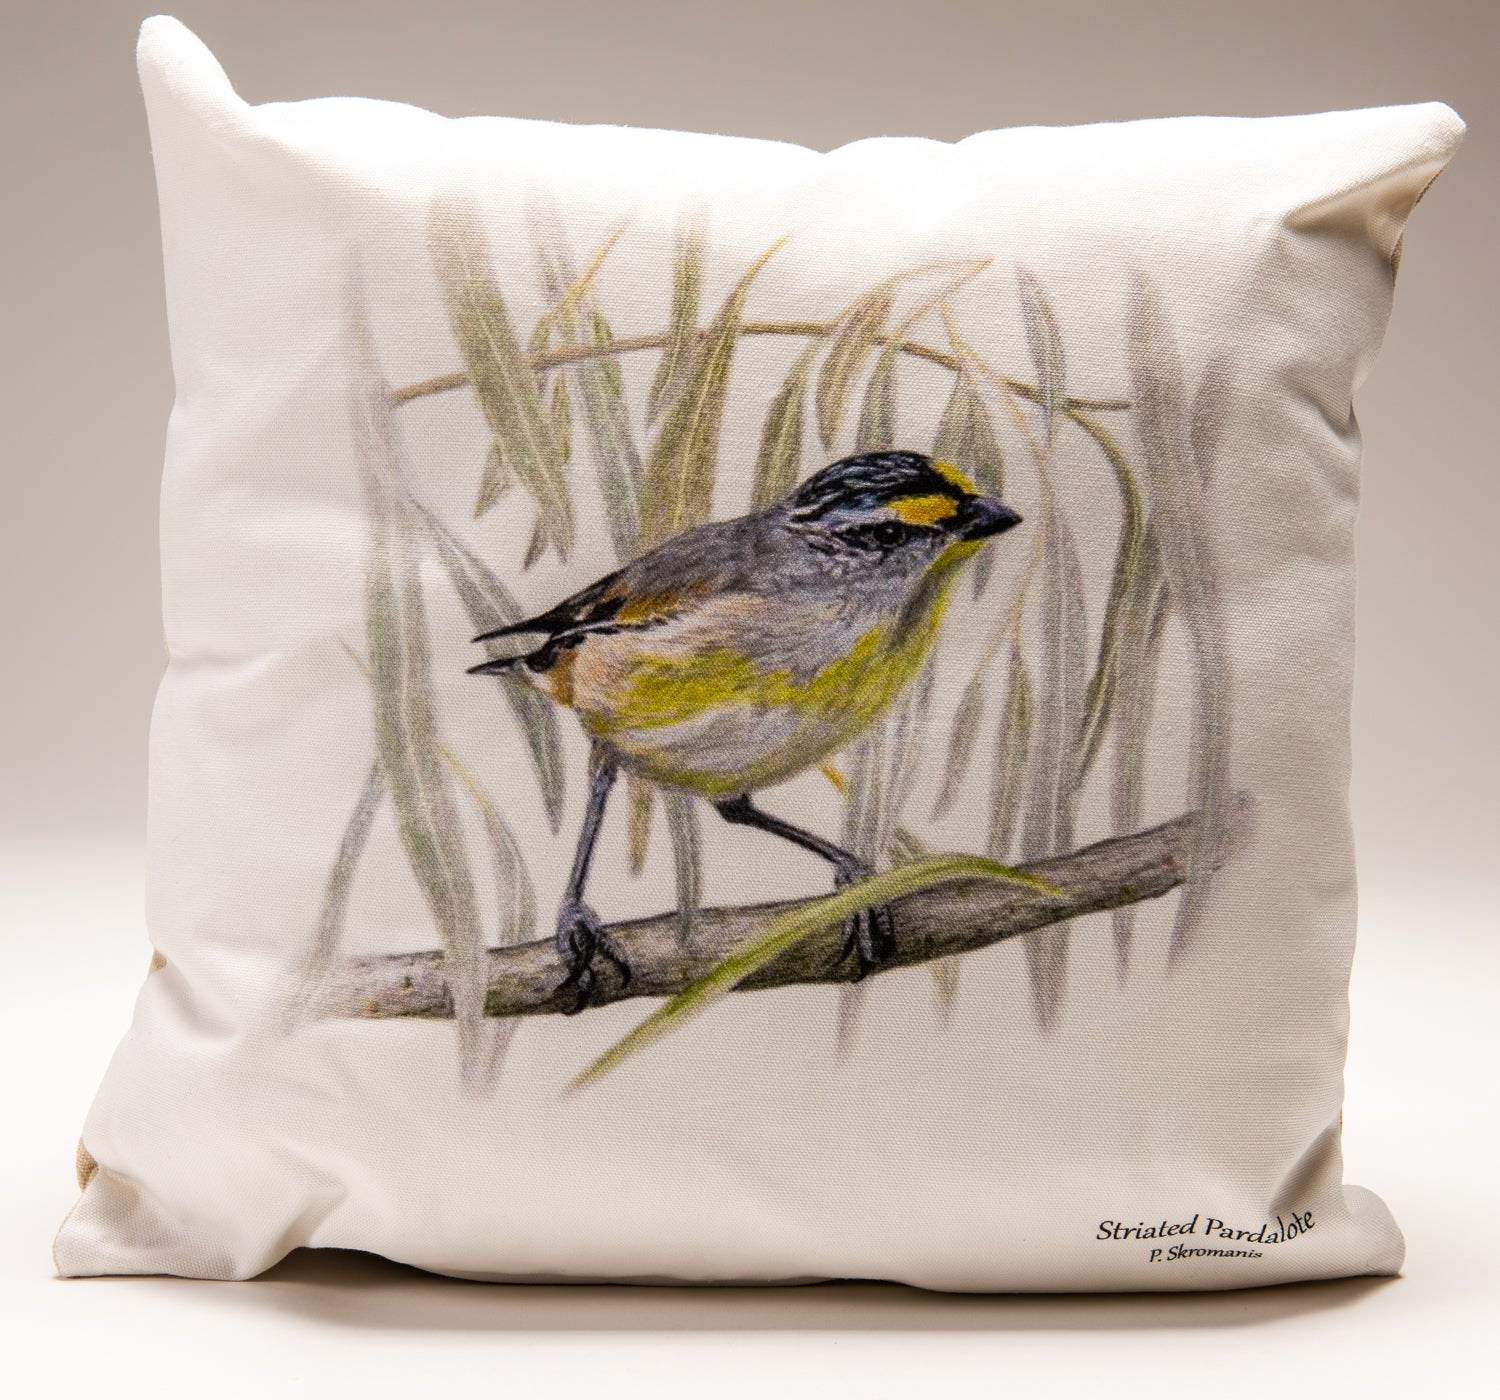 Cushion Covers - Striated Pardalote